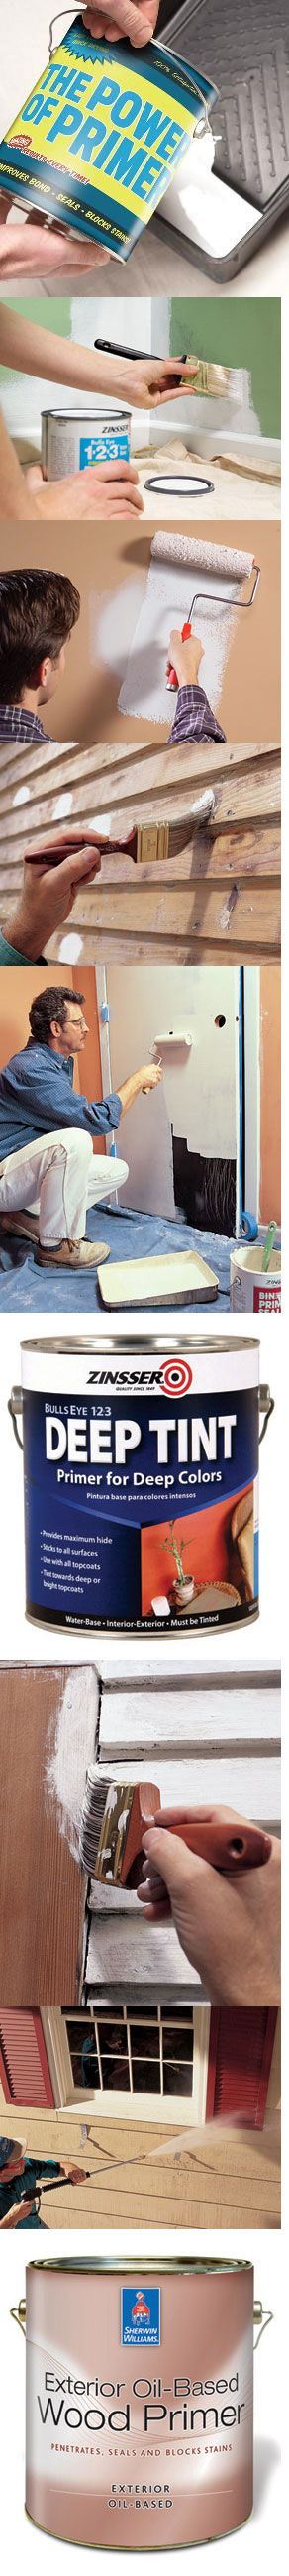 Three painting pros recommend the best primers to solve common painting problems, including stains on walls, moisture damage, old painted surfaces, odors, color changes and new exterior wood. See what 11 problems you can solve with primer at http://www.familyhandyman.com/DIY-Projects/Painting/Painting-Techniques/painting-how-to-choose-and-use-primers/View-All